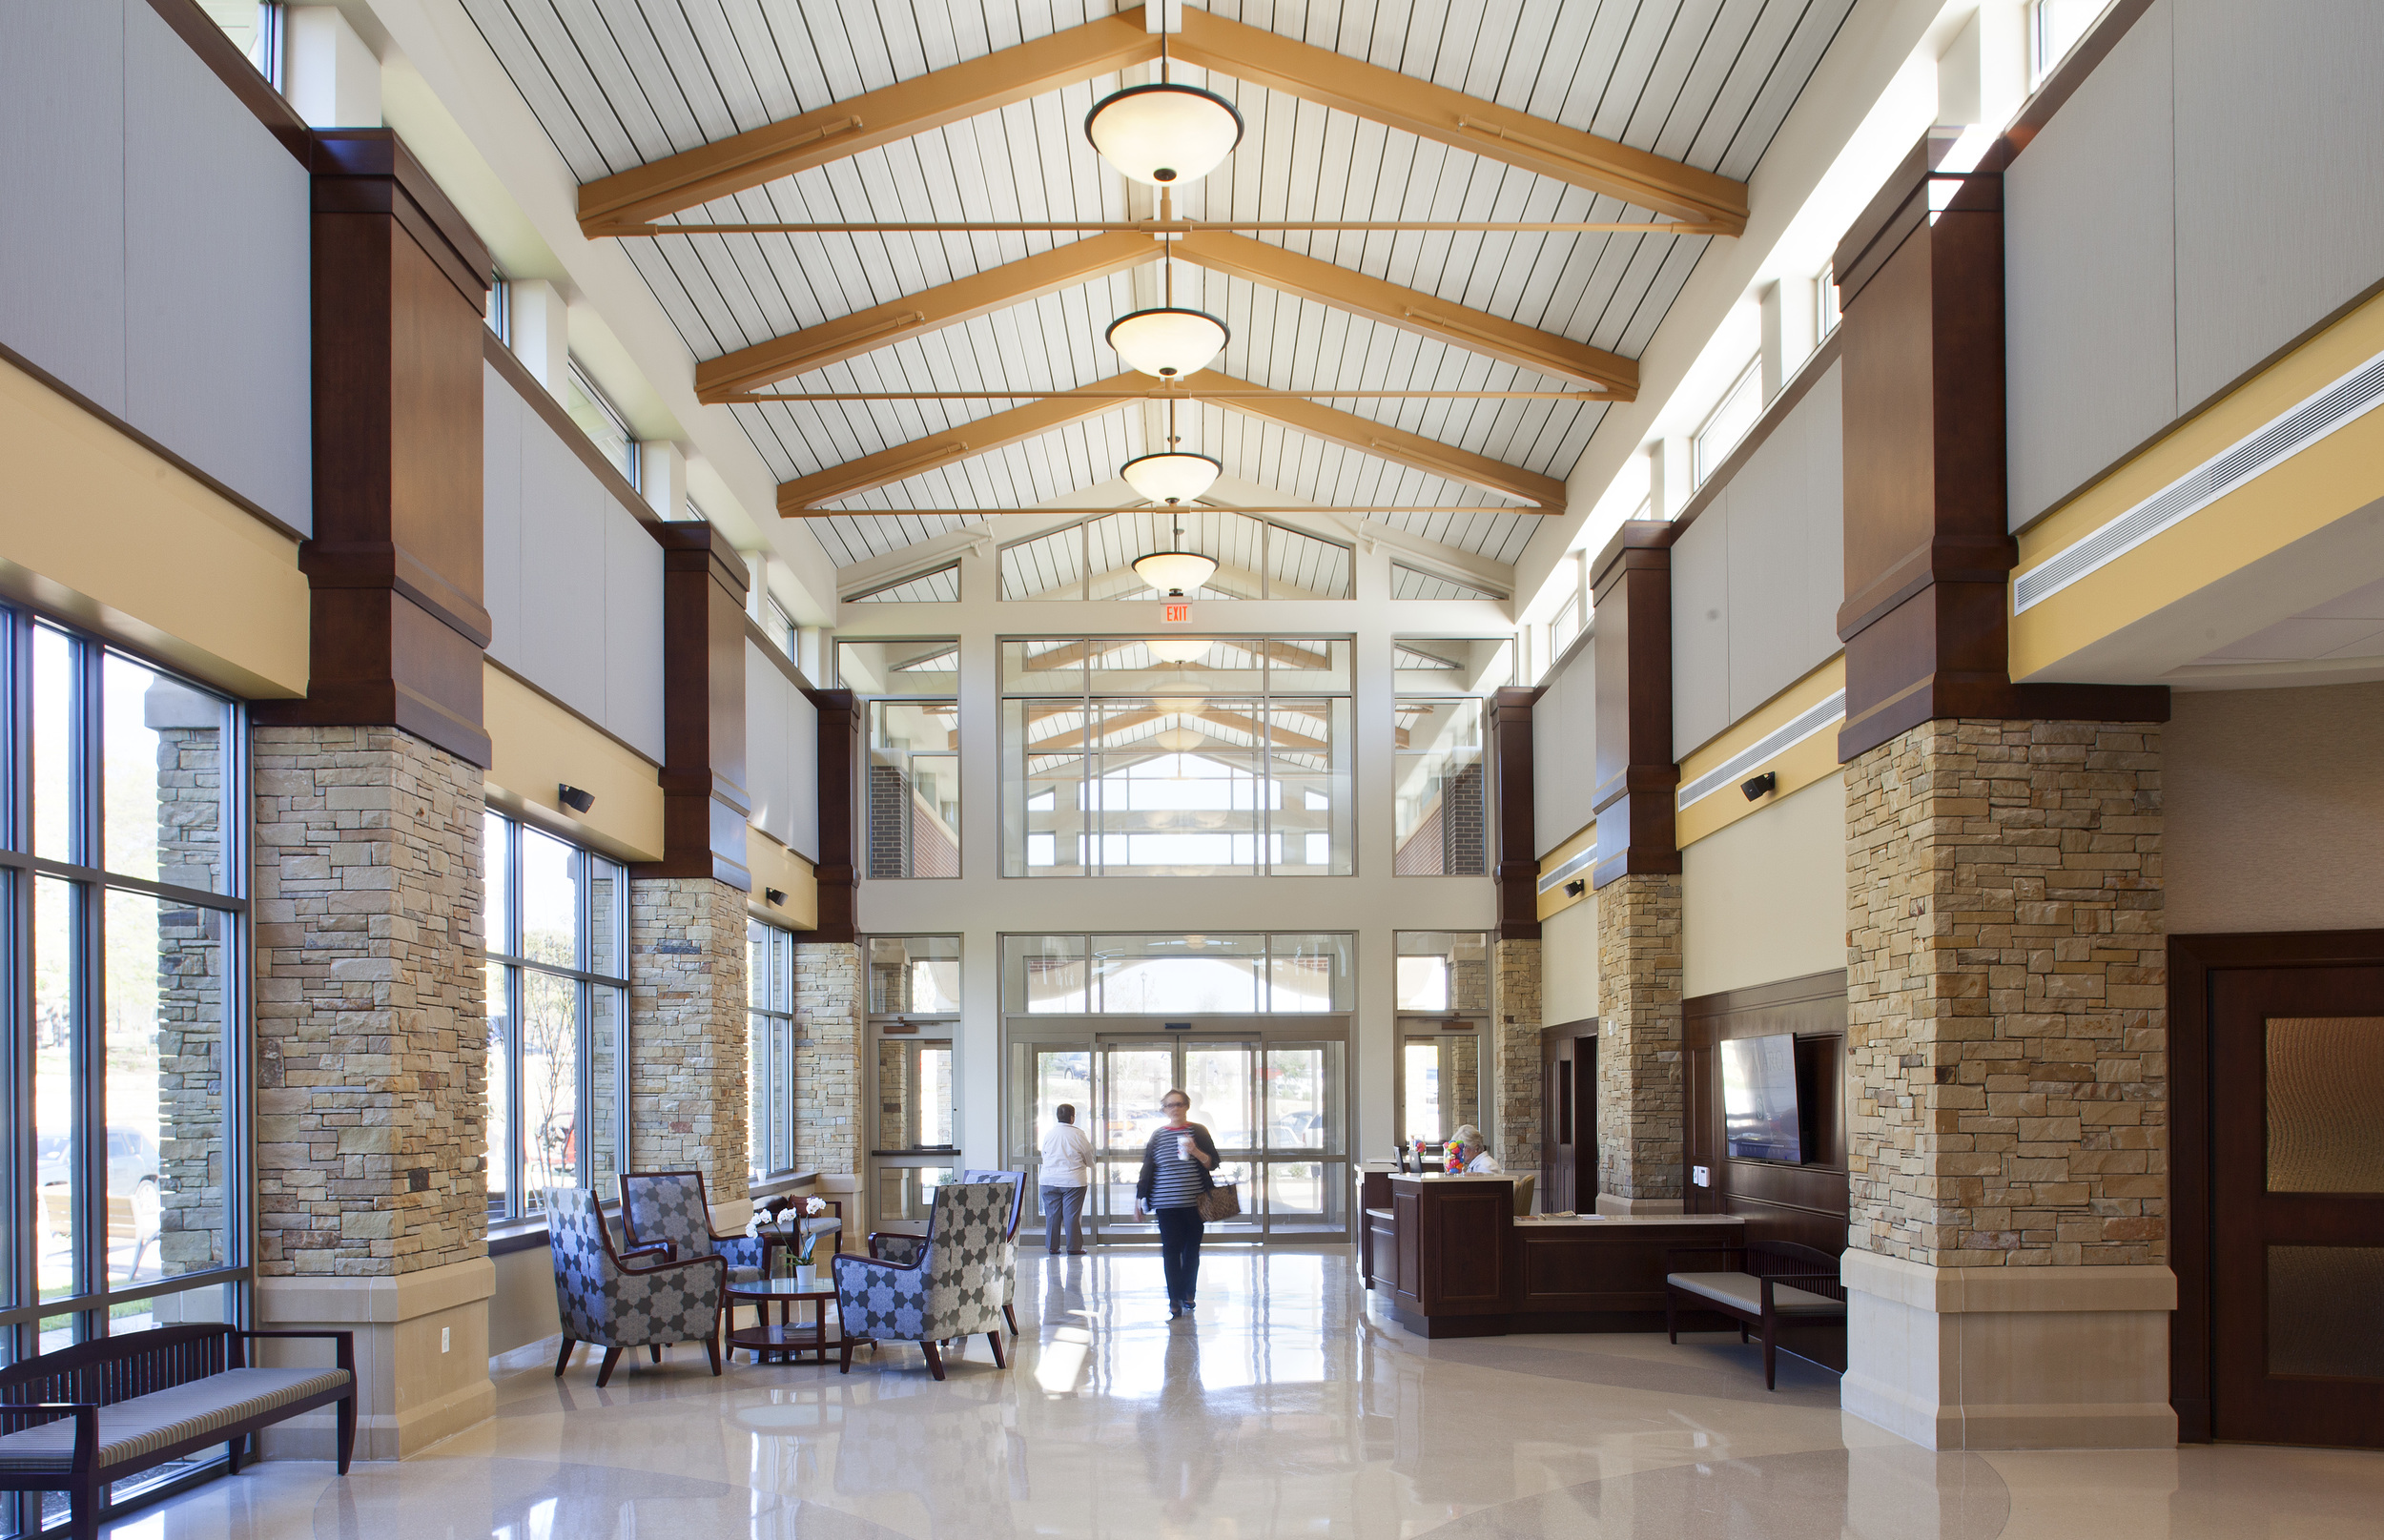 THE MARQ SOUTHLAKE COMMUNITY CENTER